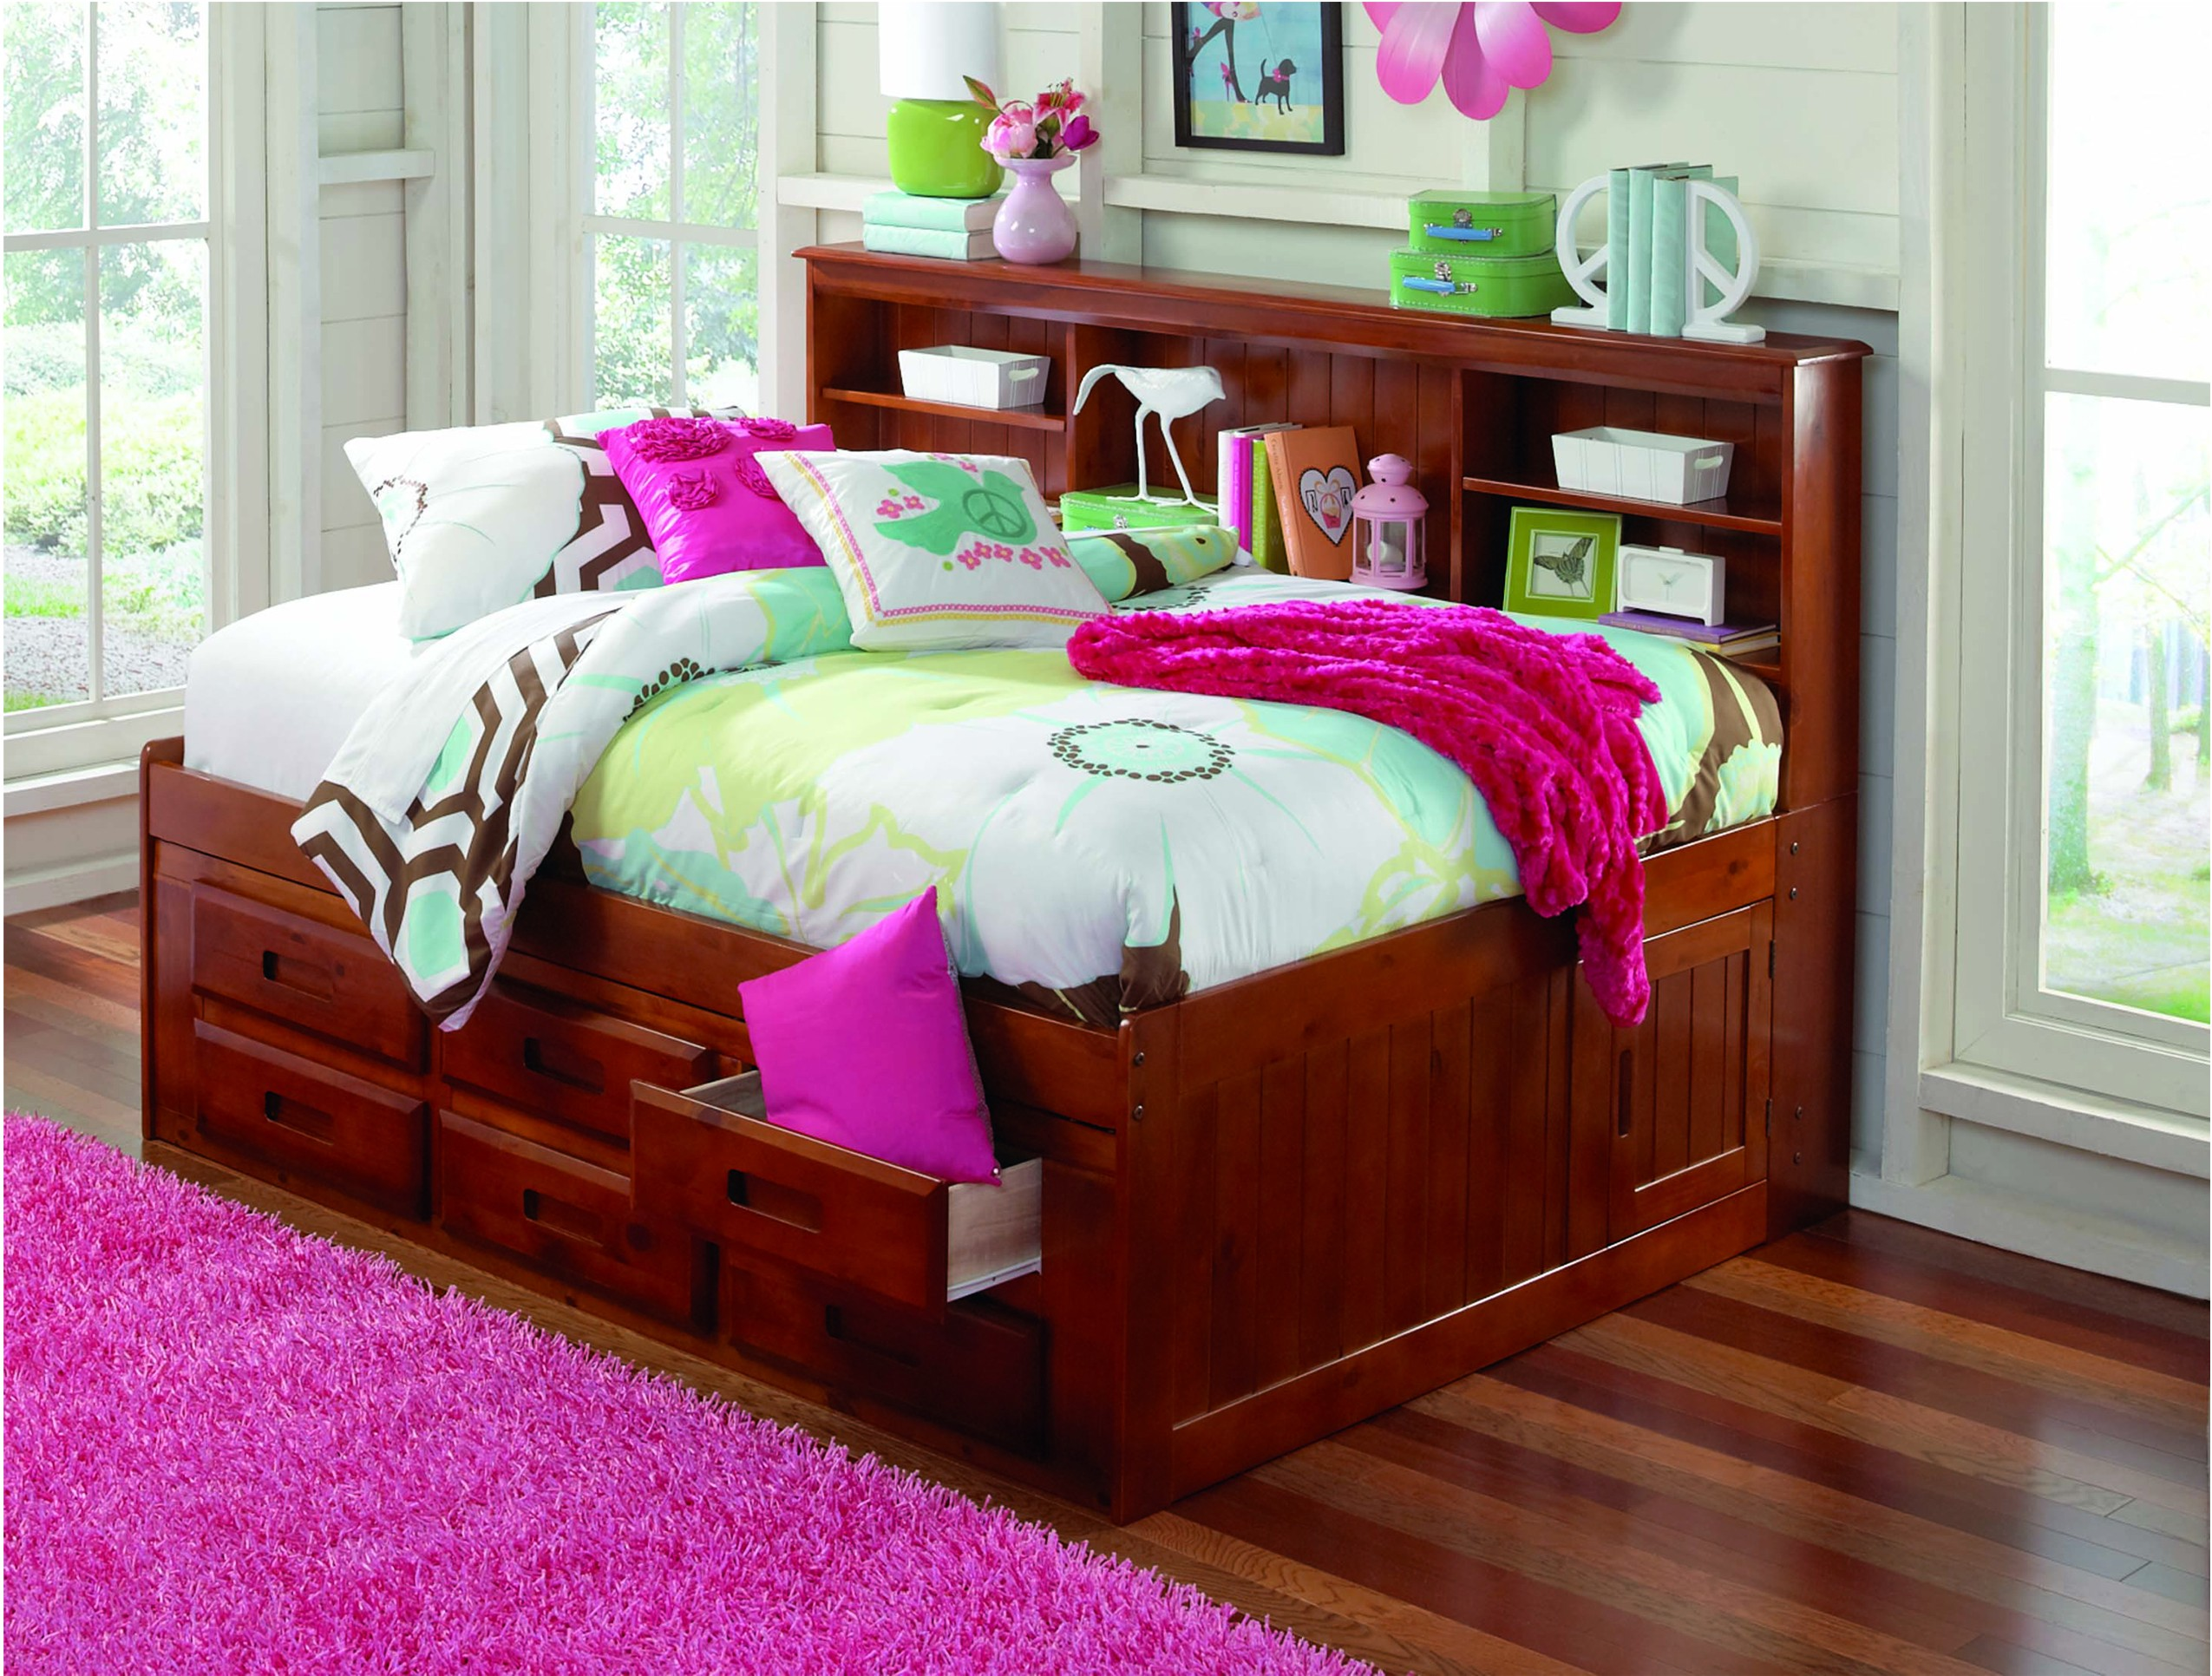 Girls daybeds